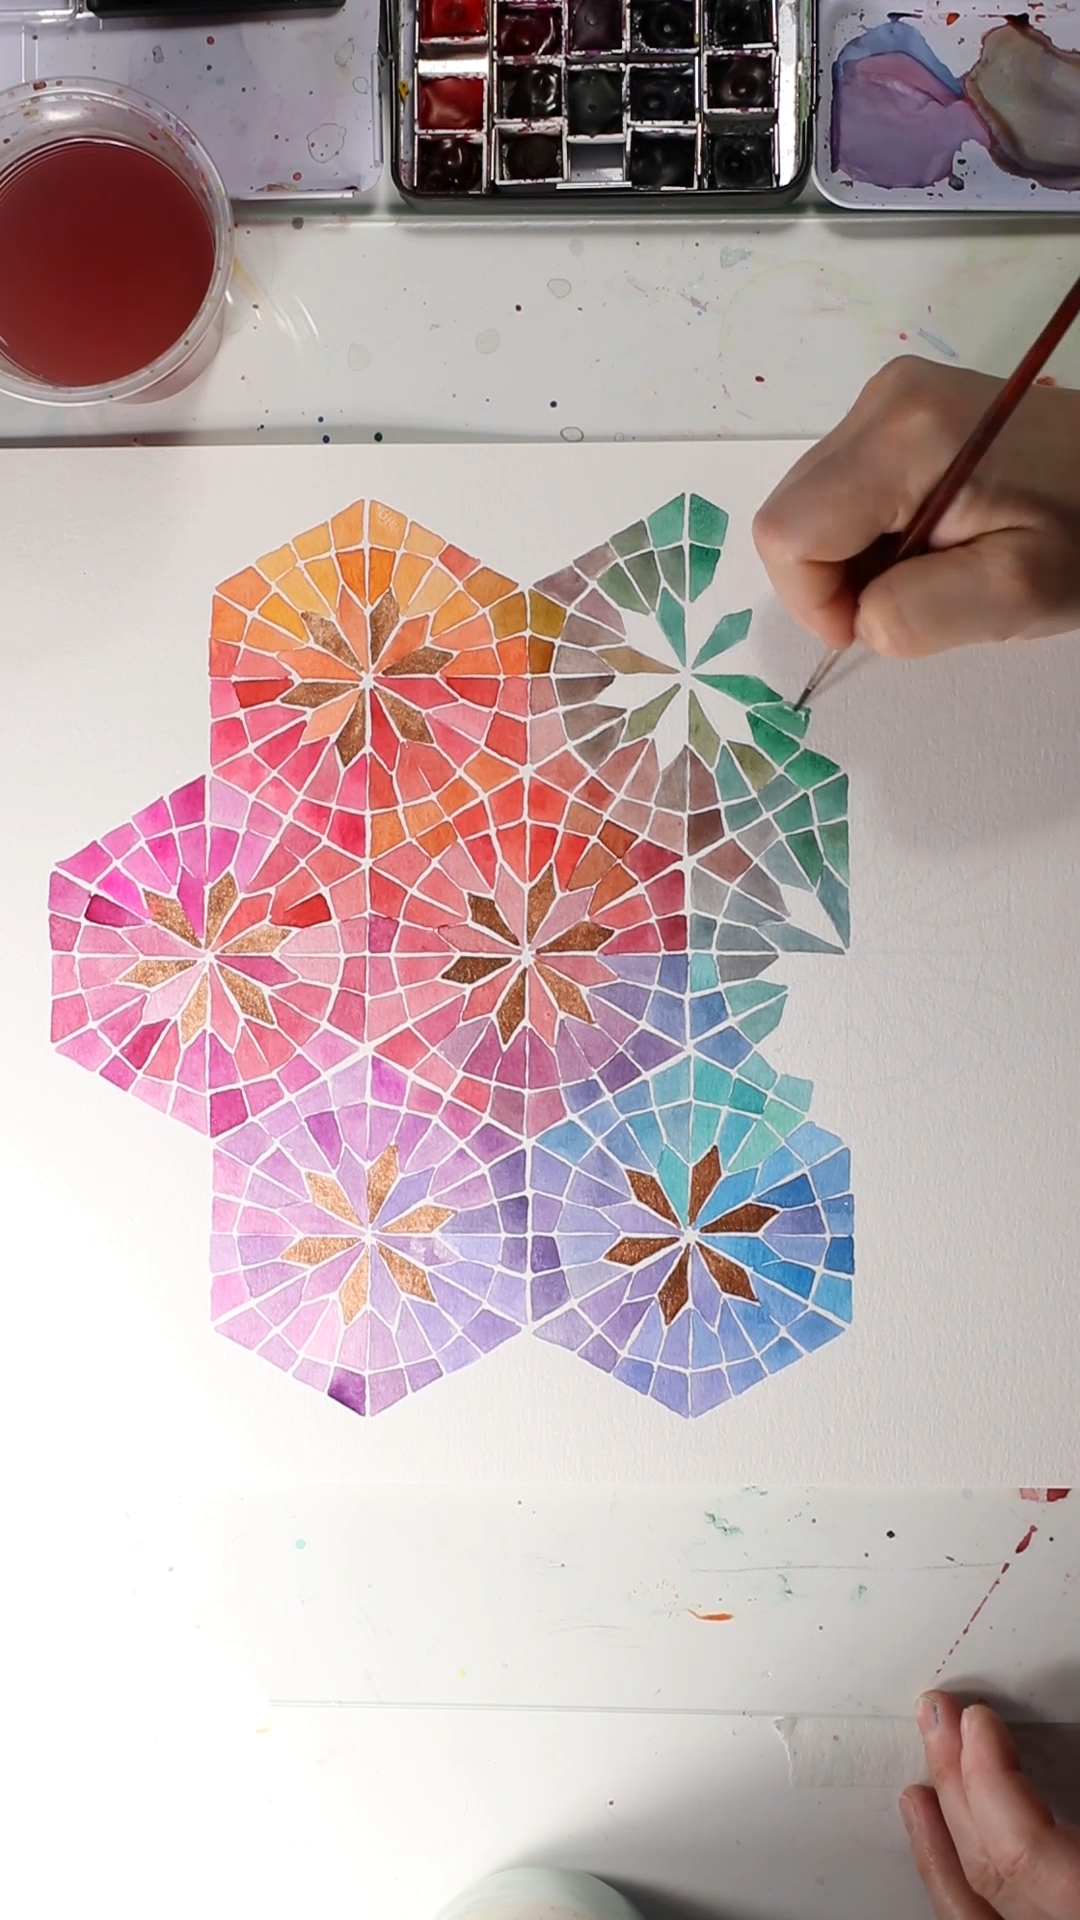 Insanely Intricate Watercolors